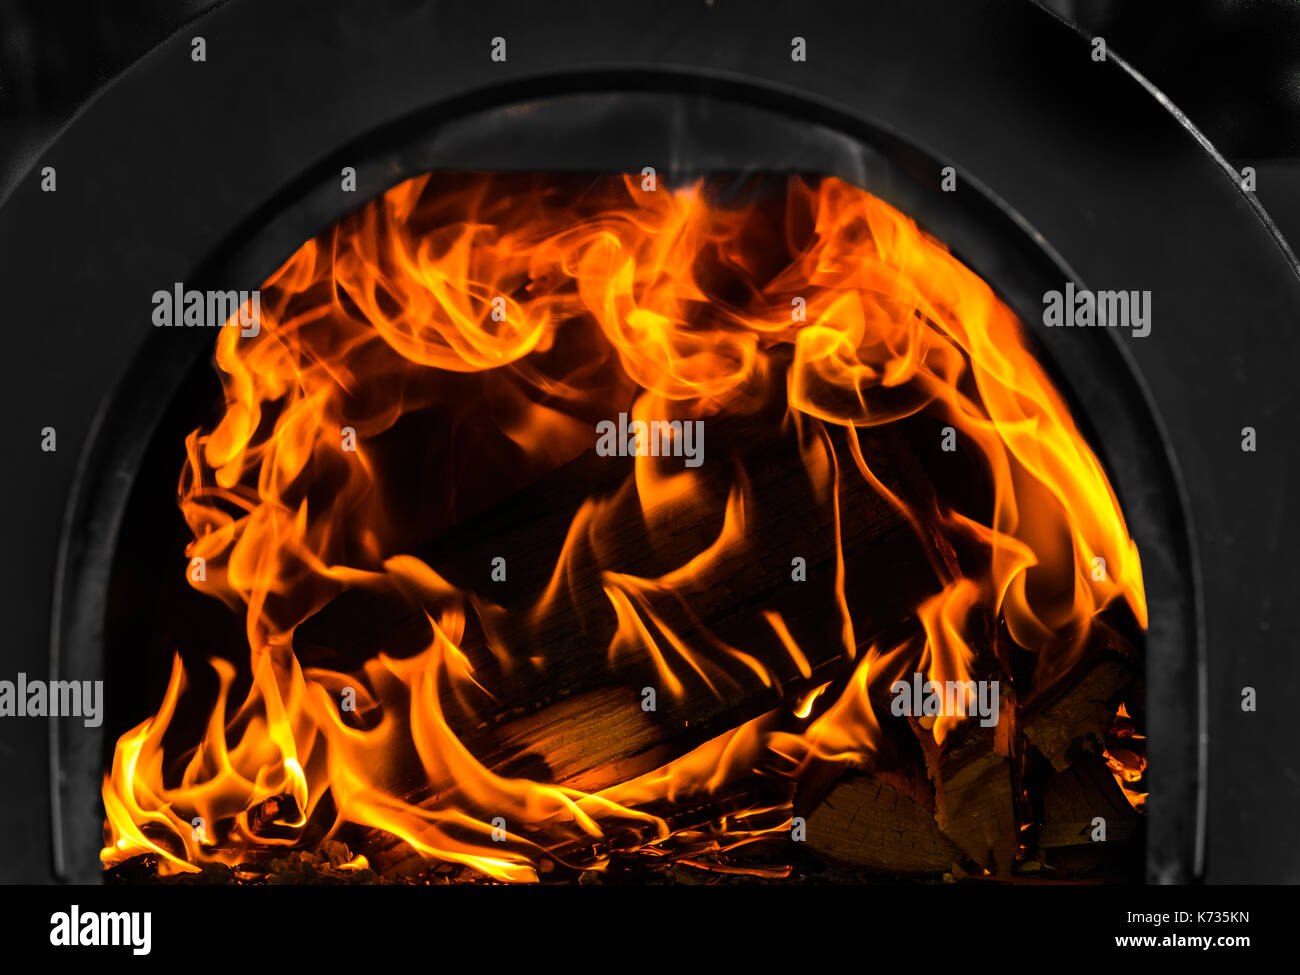 Flames leap from a blazing log in a metal cased wood burning oven - Stock Image